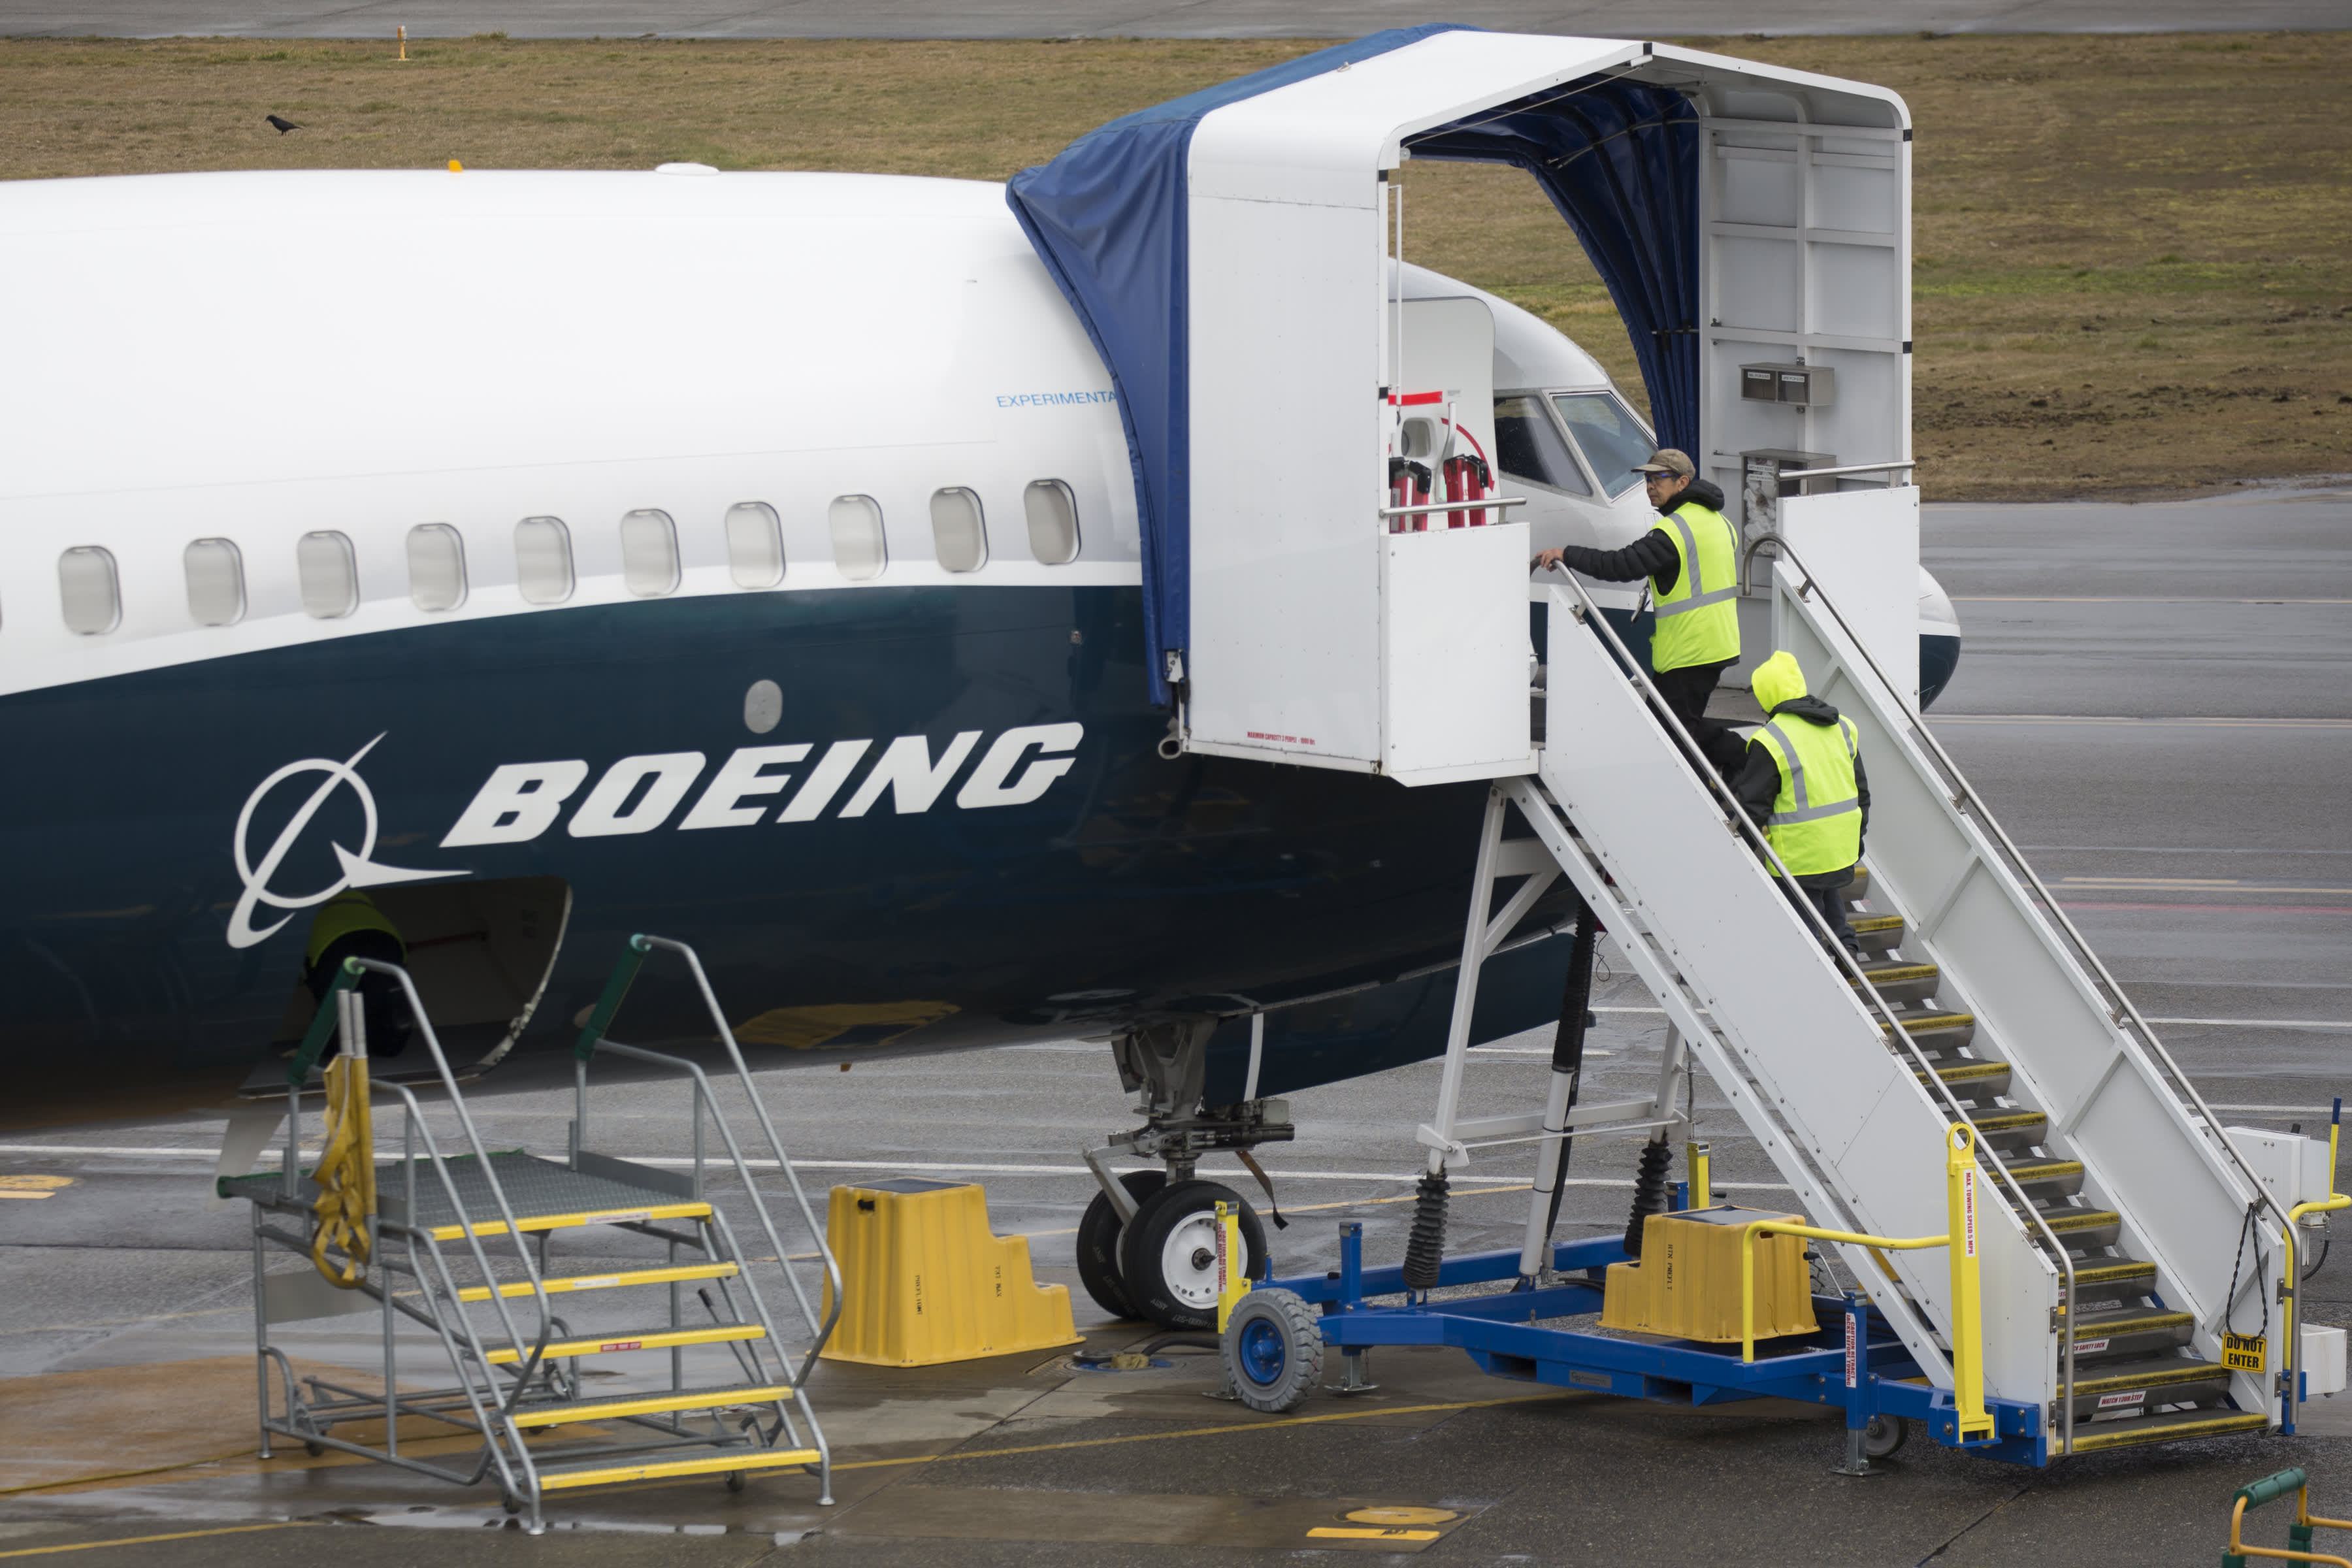 Boeing is 'a wolf in sheep's clothing,' trader warns